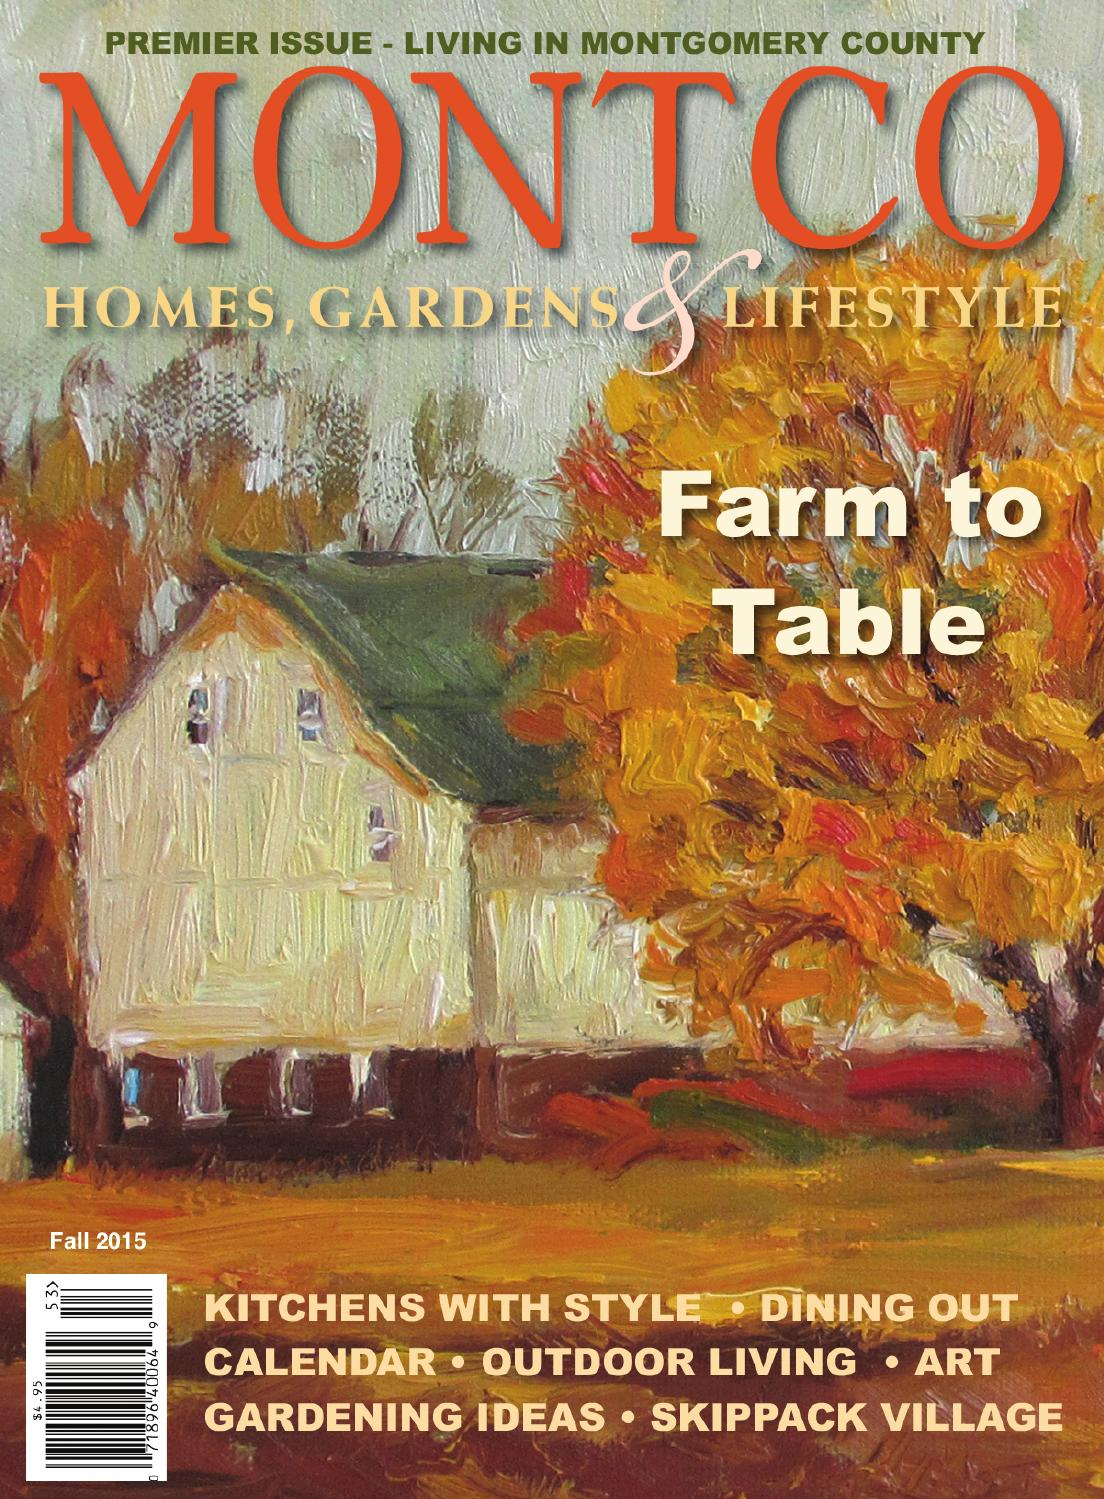 Montco Homes, Gardens & Lifestyle Fall 2015 by BCM Media - issuu